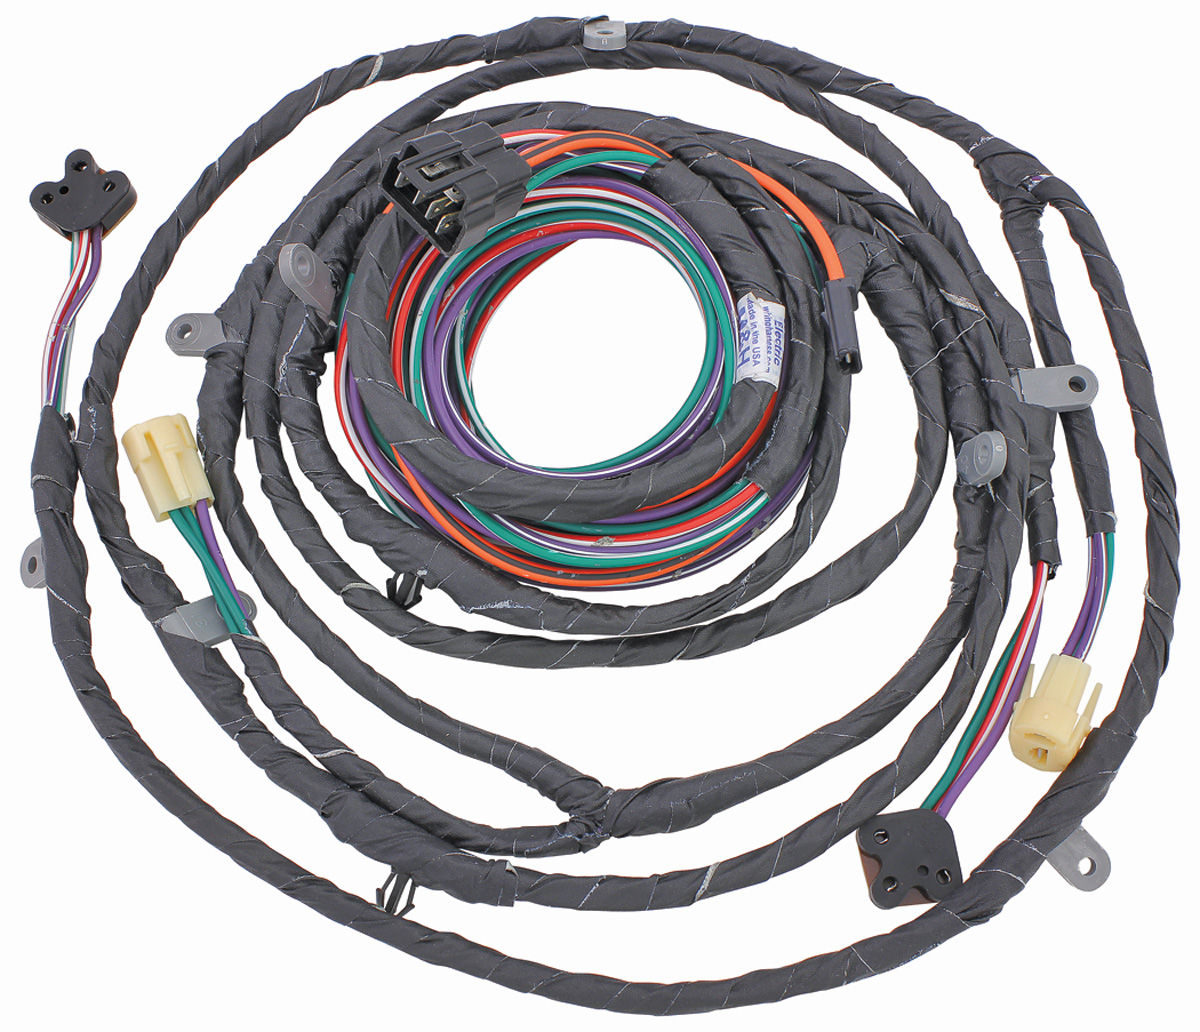 1967 Dodge Charger Ip Wiring Diagram 36 Images 1970 Truck 1950 Chevy Horn 14505 Lrgresize6652c572